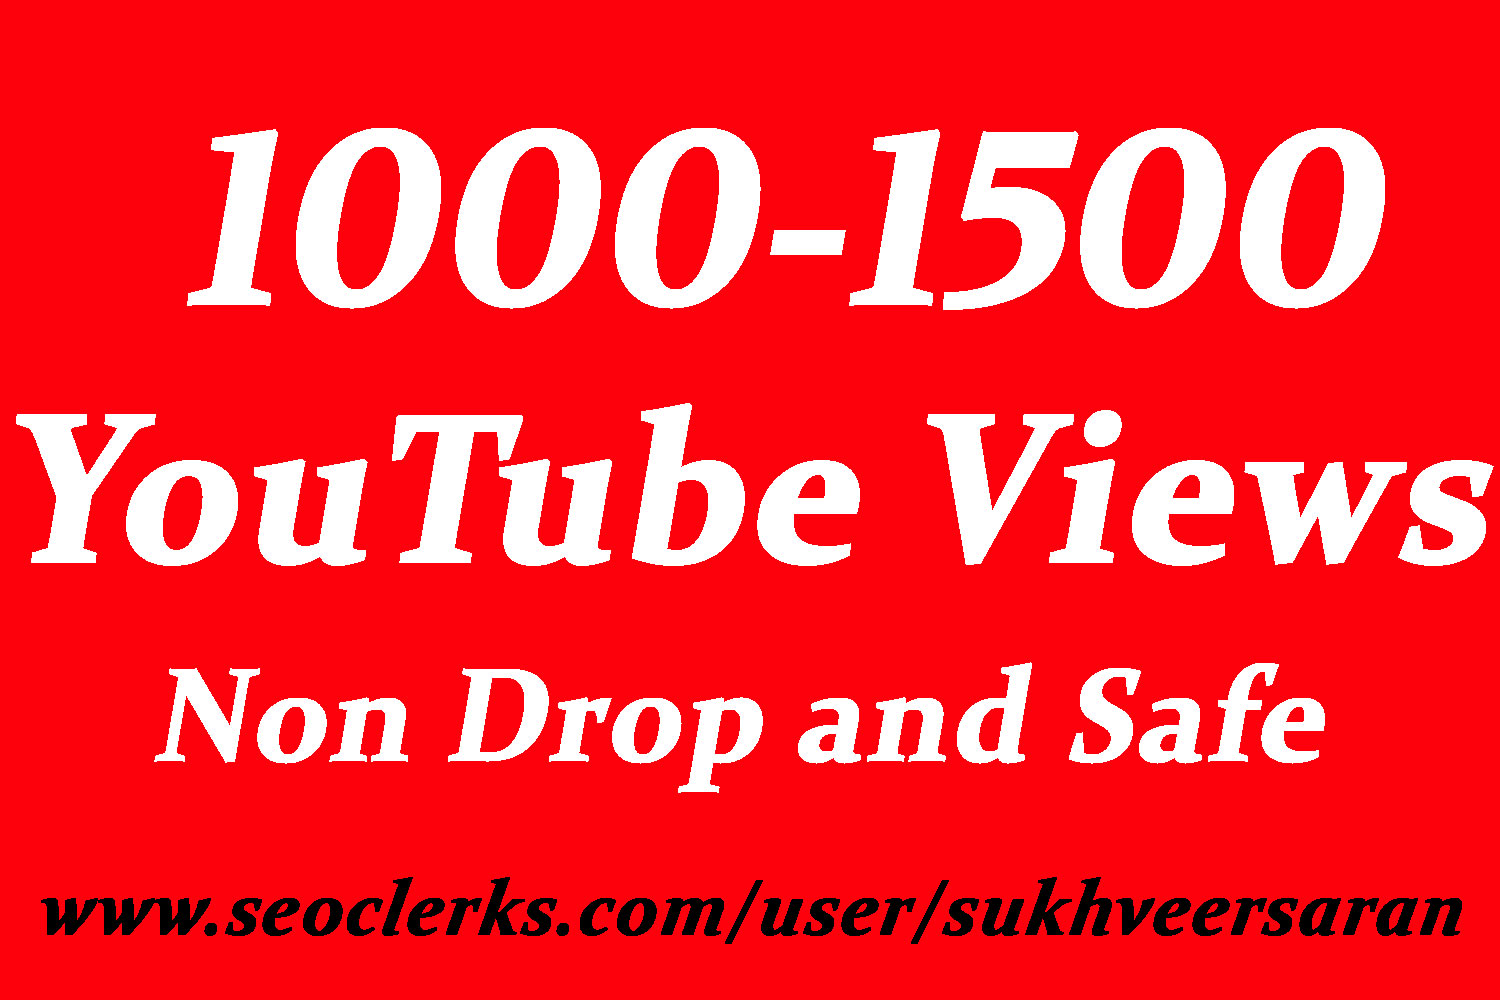 Get 1000 To 1500 High Quality YouTube Views with choice Extra service 2000, 3000, 4000, 5000, 6000, 7000, 8000, 9000,10000, 20000 and 50,000, 50k, 100,000 100k YouTube video Views